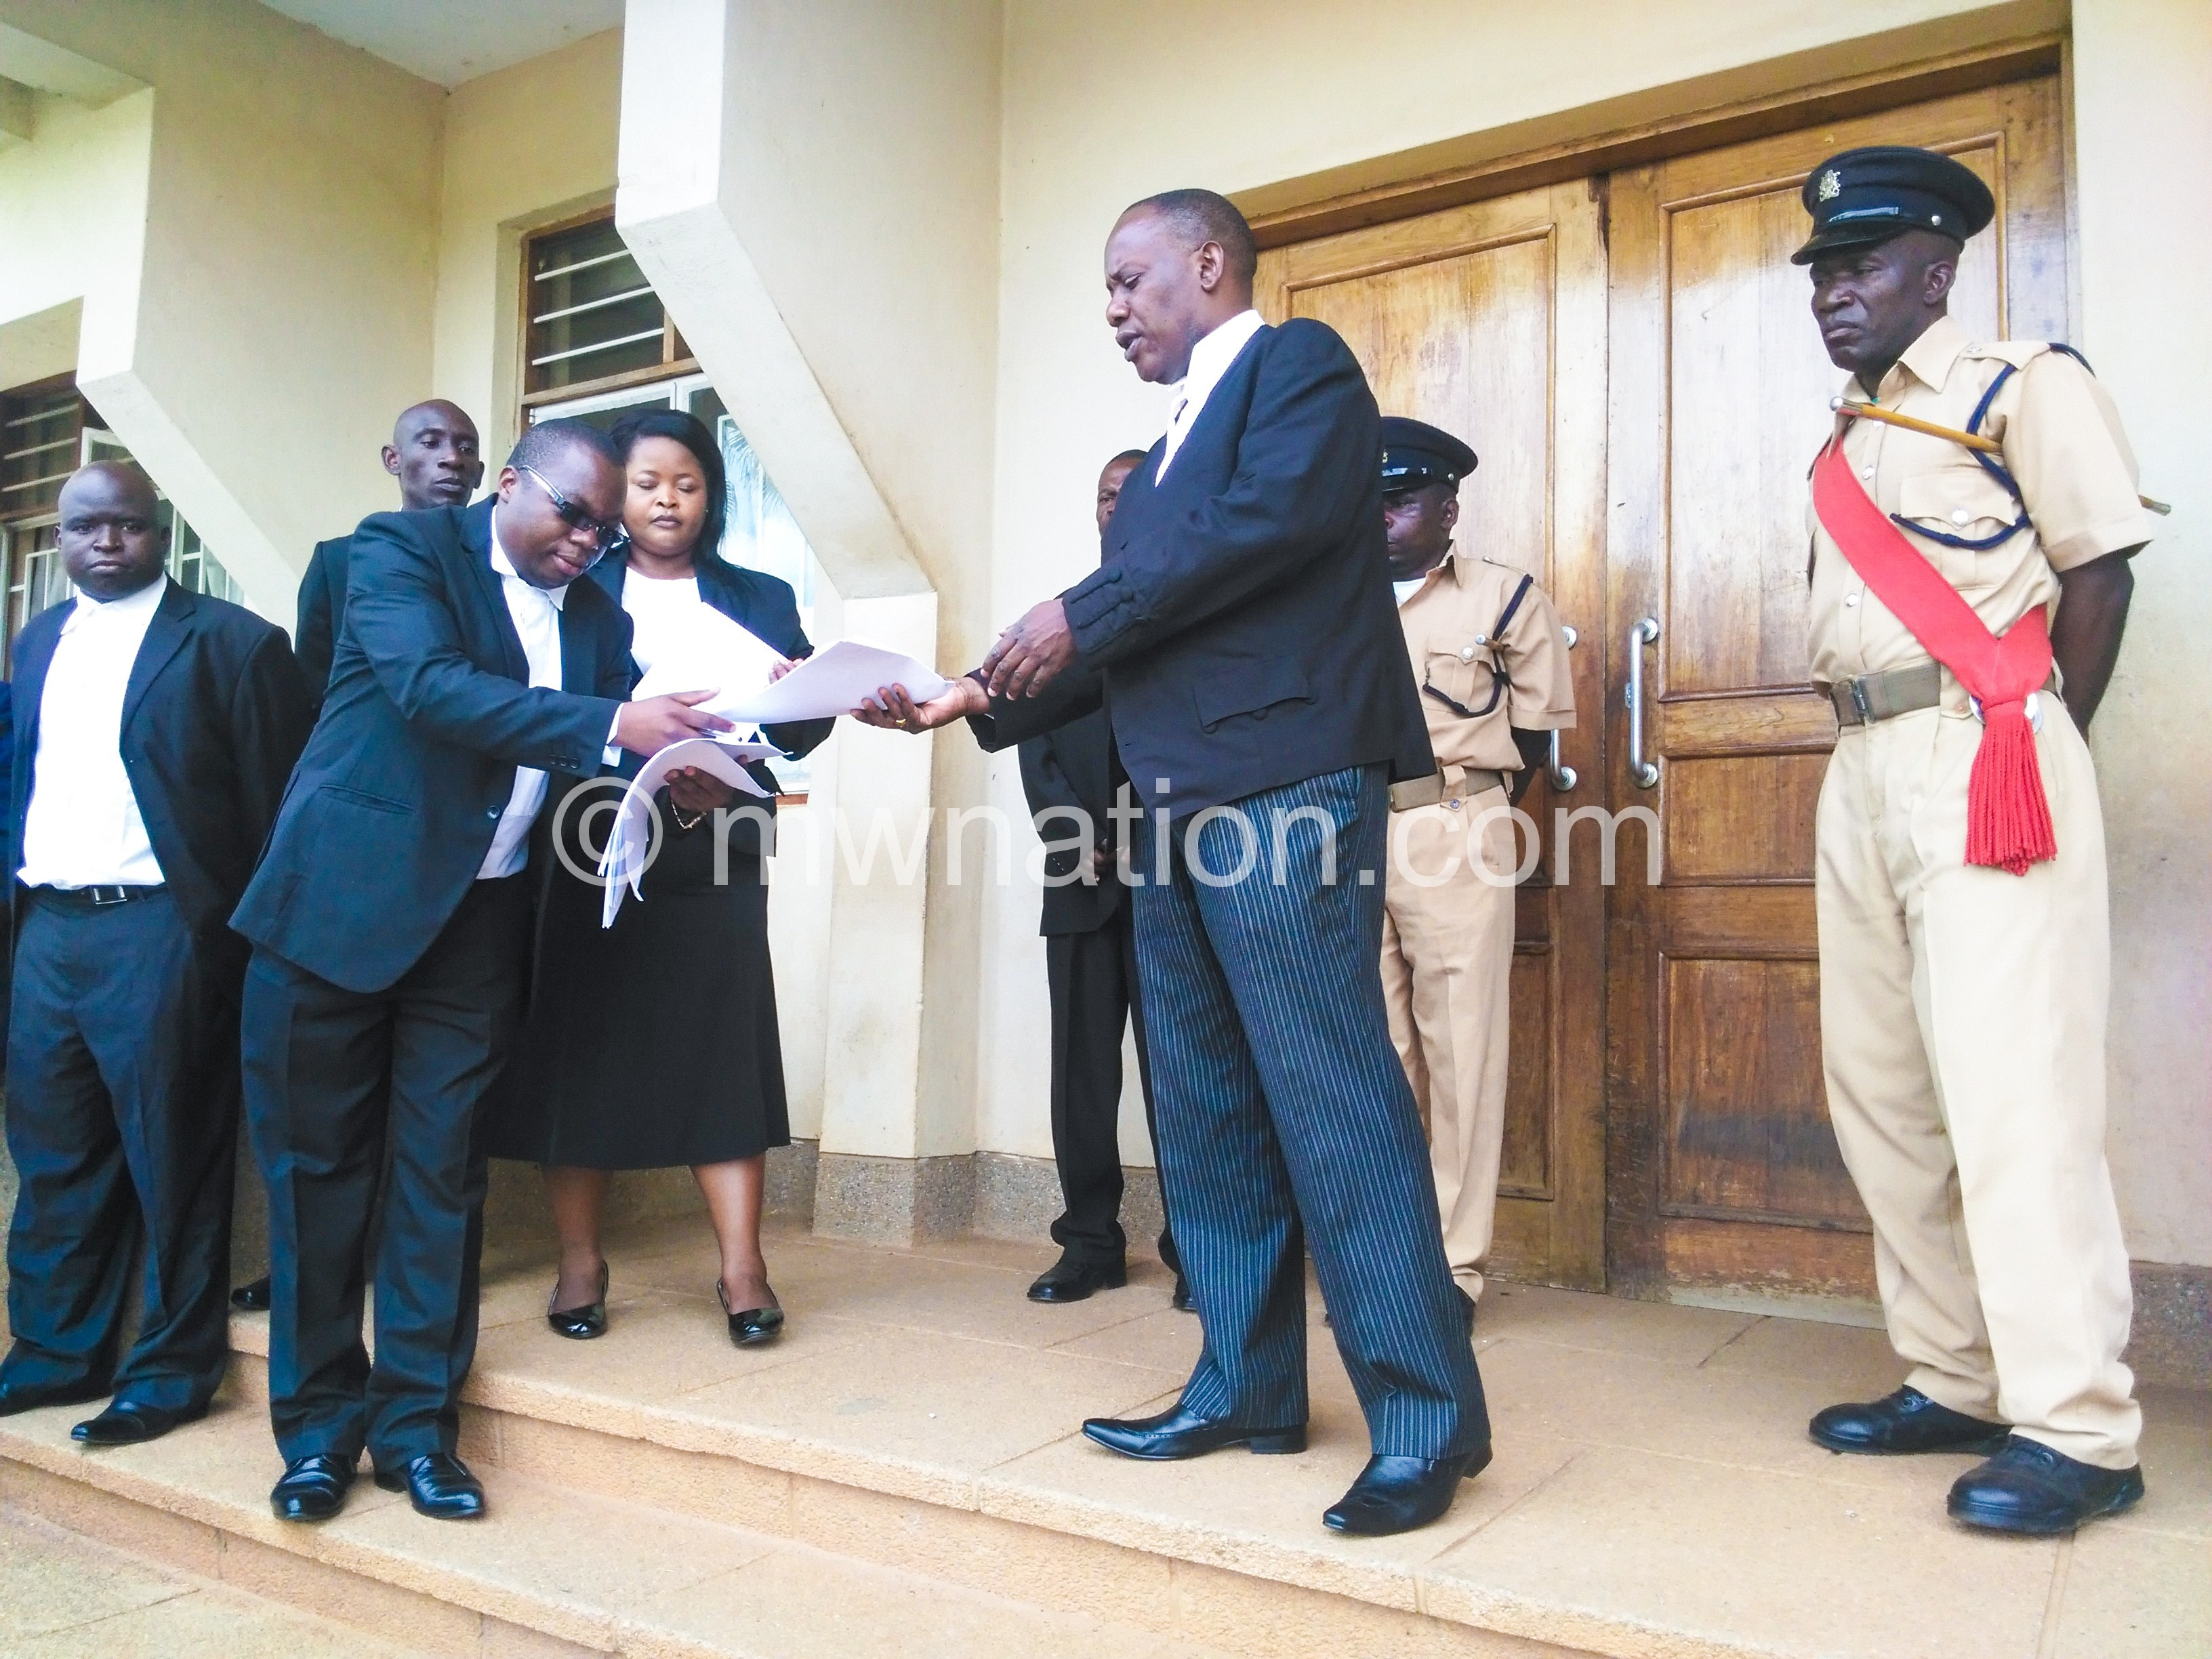 Gondwe (in glasses) presenting the petition to Madise on Monday